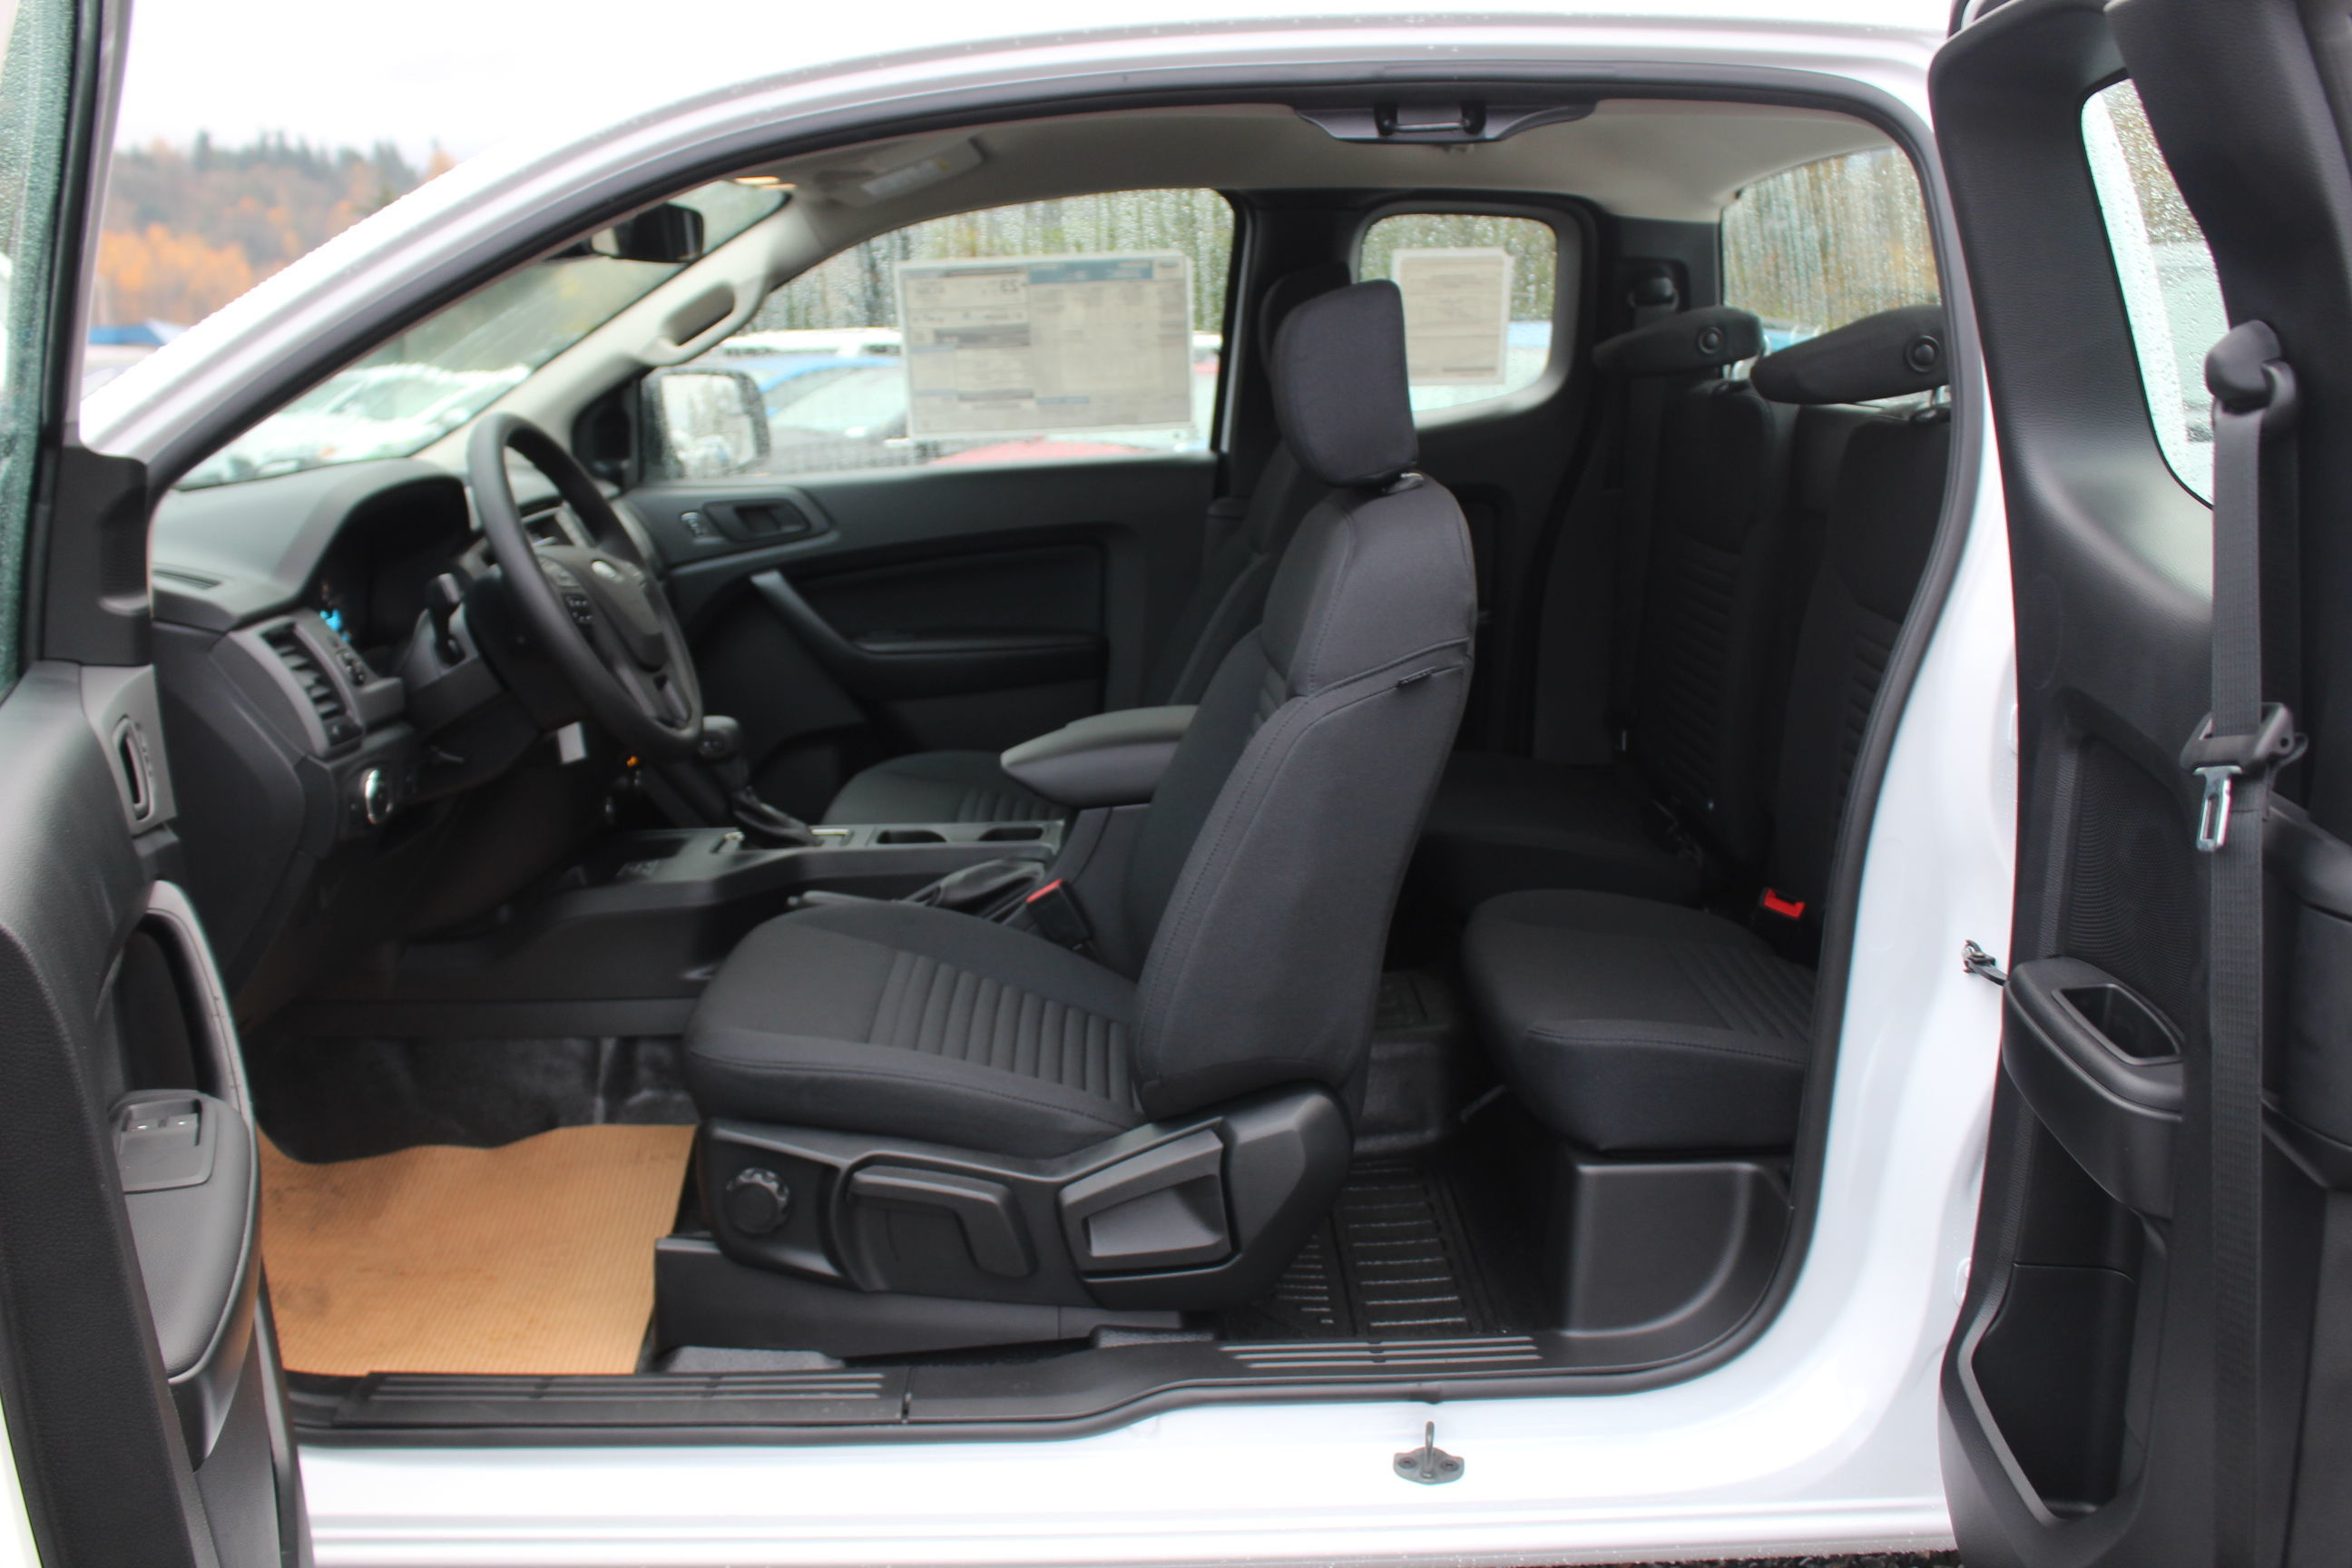 2019 Ranger Super Cab 4x2, Pickup #E9000 - photo 14